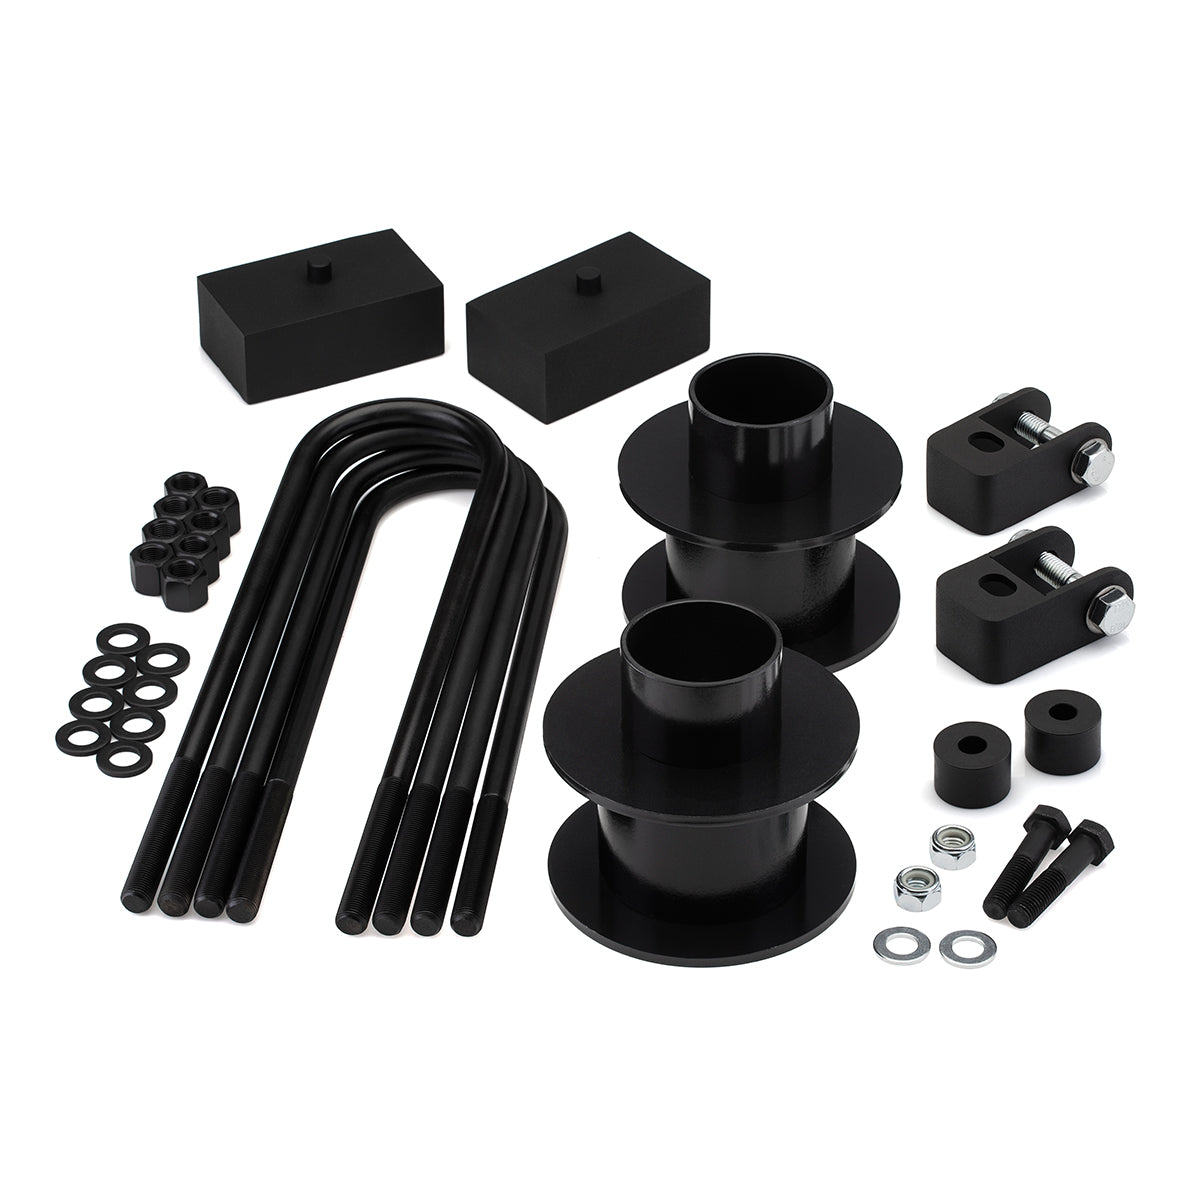 2005-2020 Ford F-350 Full Lift Kit with Bump Stop Drop and Shock Extenders